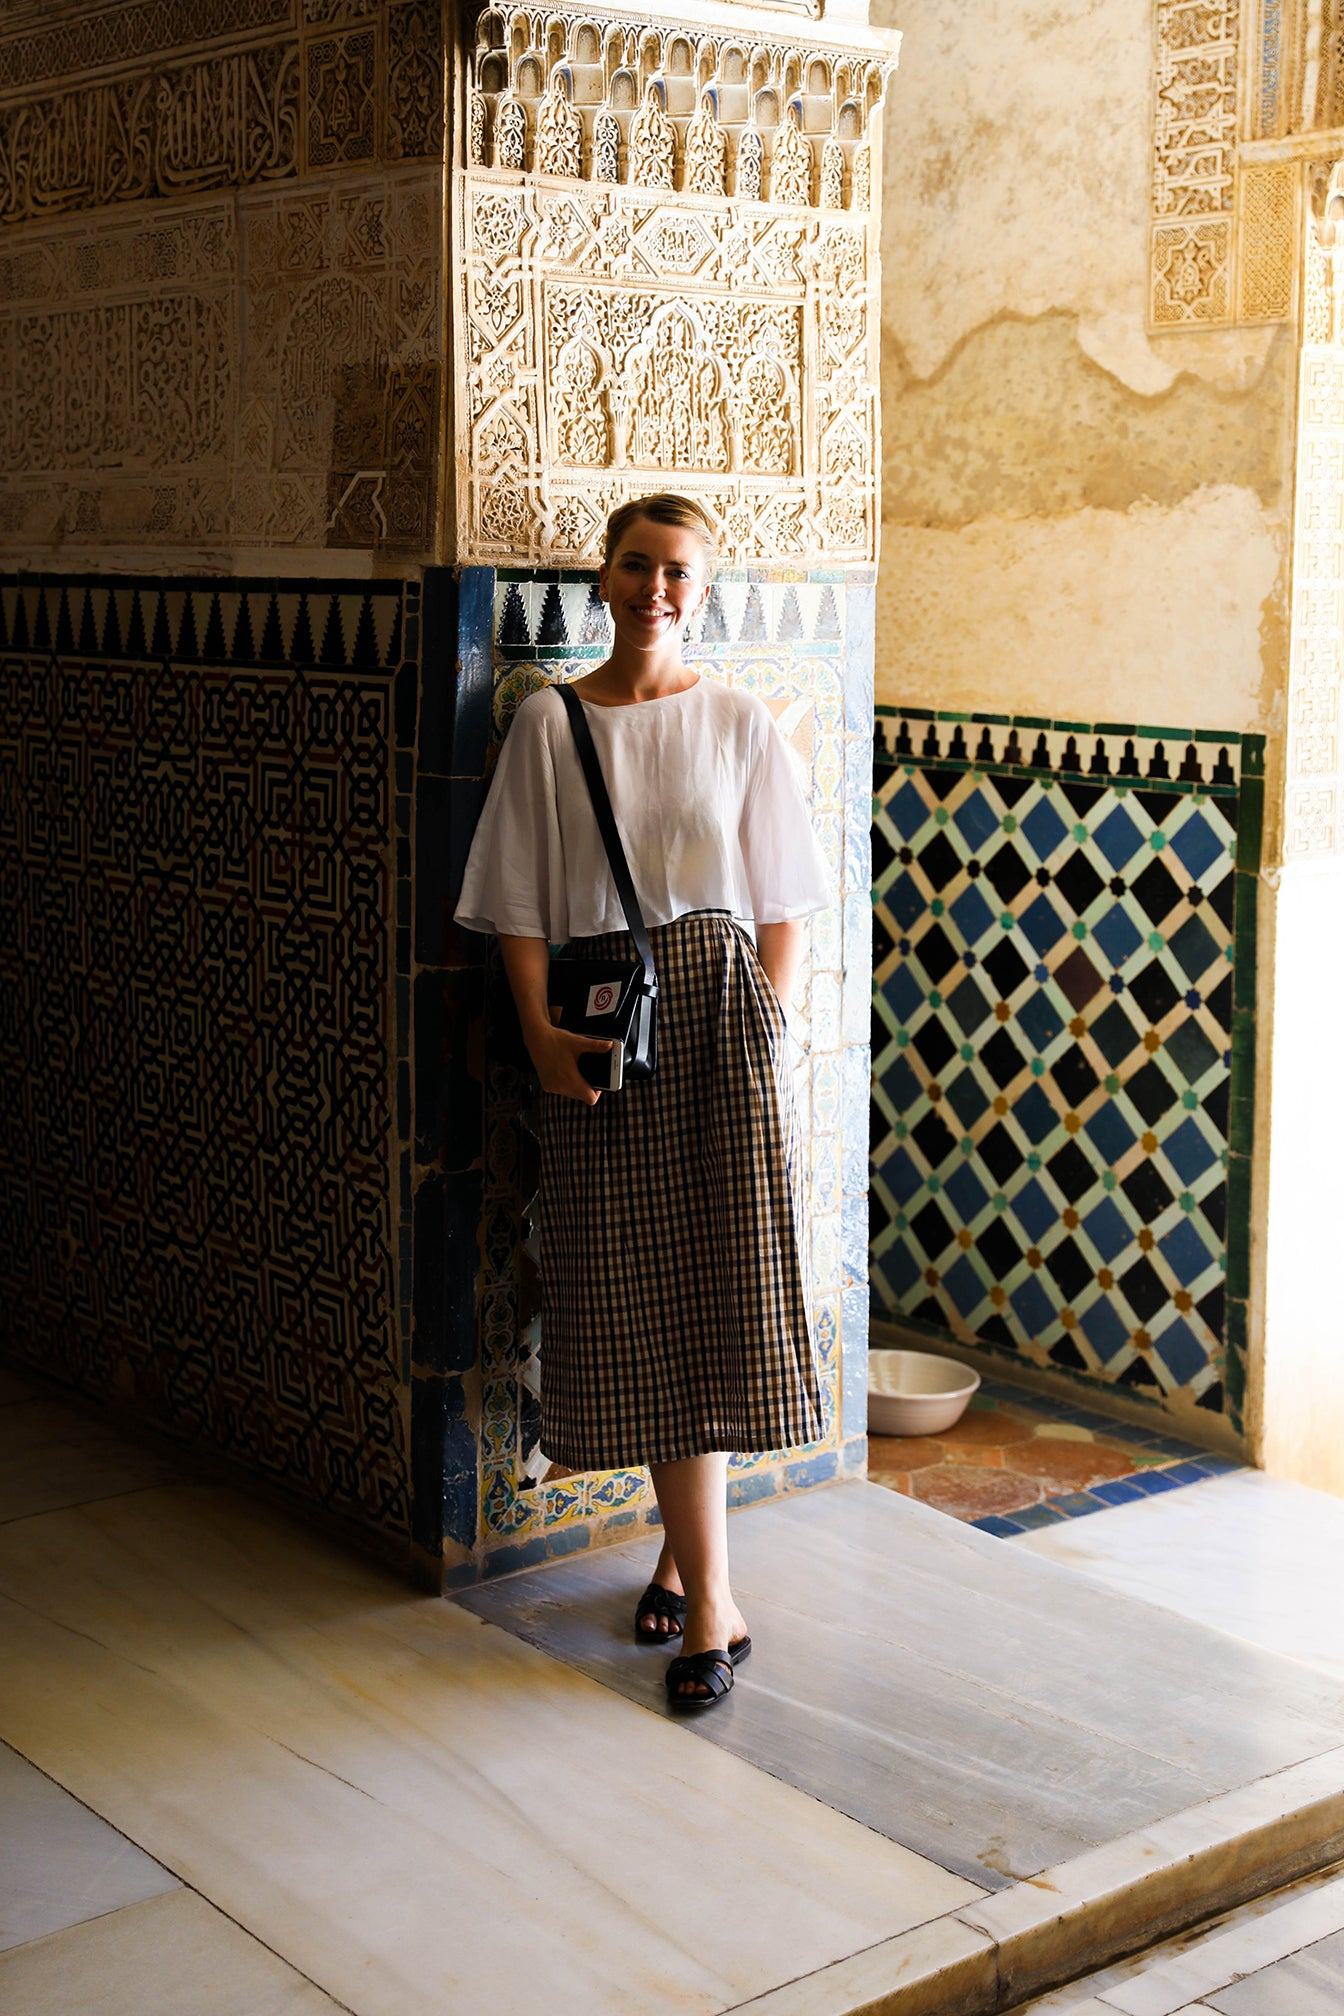 Isabelle Fox Granada Andalusia Guide